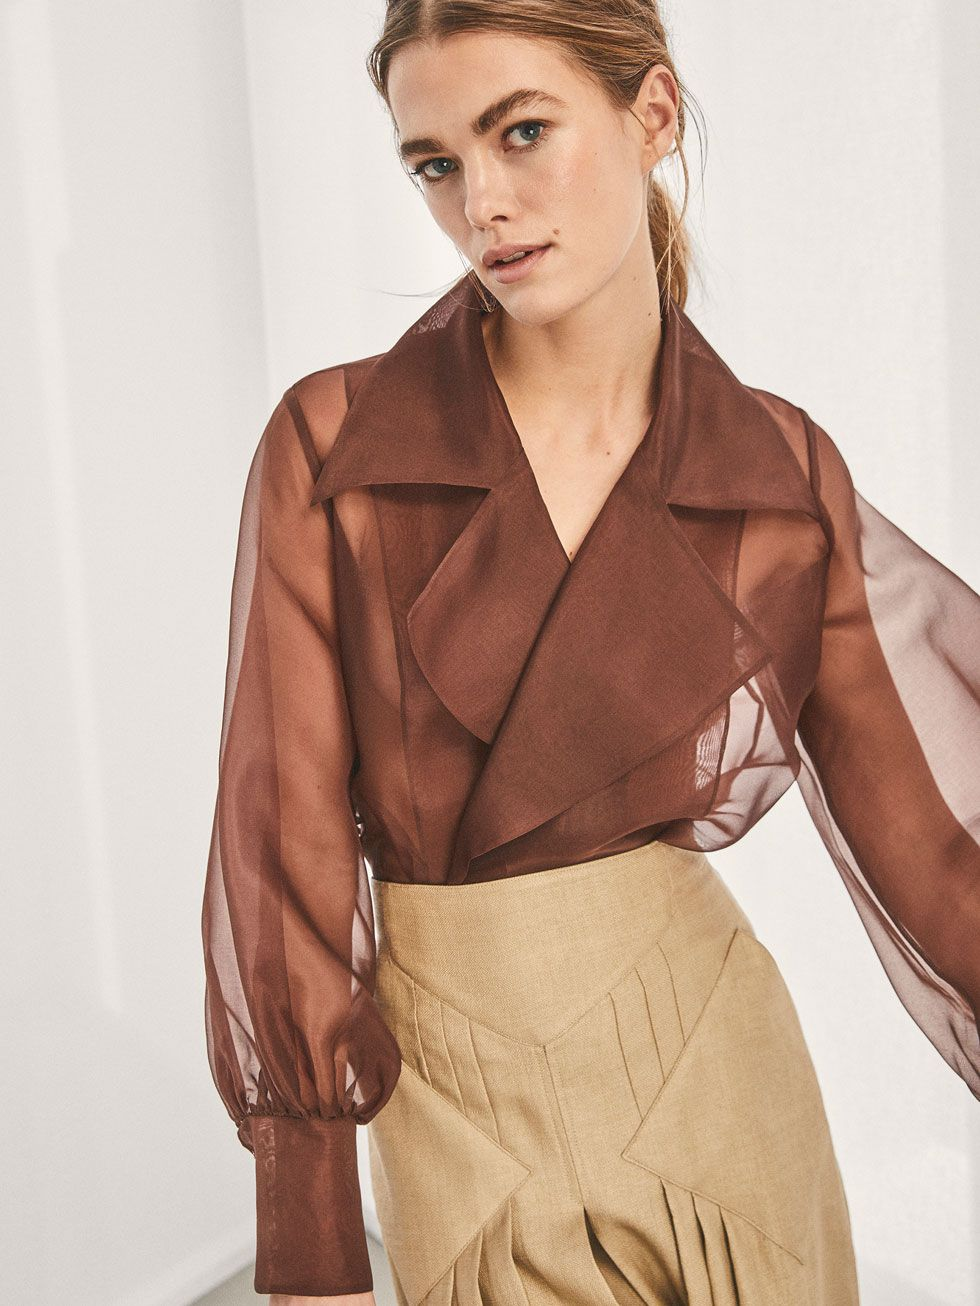 4dbcbc22ae8be Fall Winter 2017 Women´s LIMITED EDITION SILK OVERSHIRT WITH TIE DETAIL at Massimo  Dutti for 150. Effortless elegance!